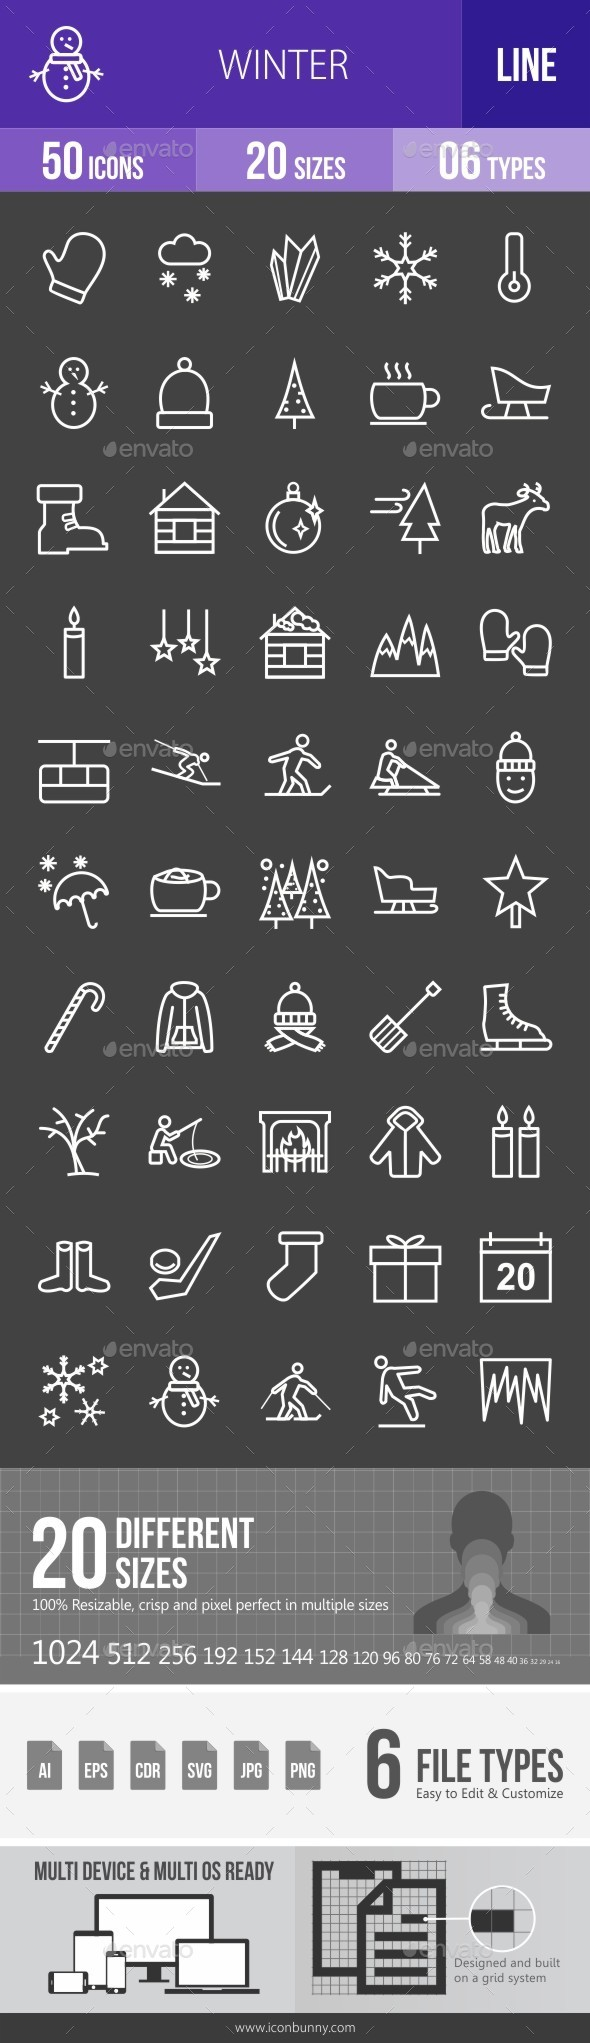 Winter Line Inverted Icons - Icons